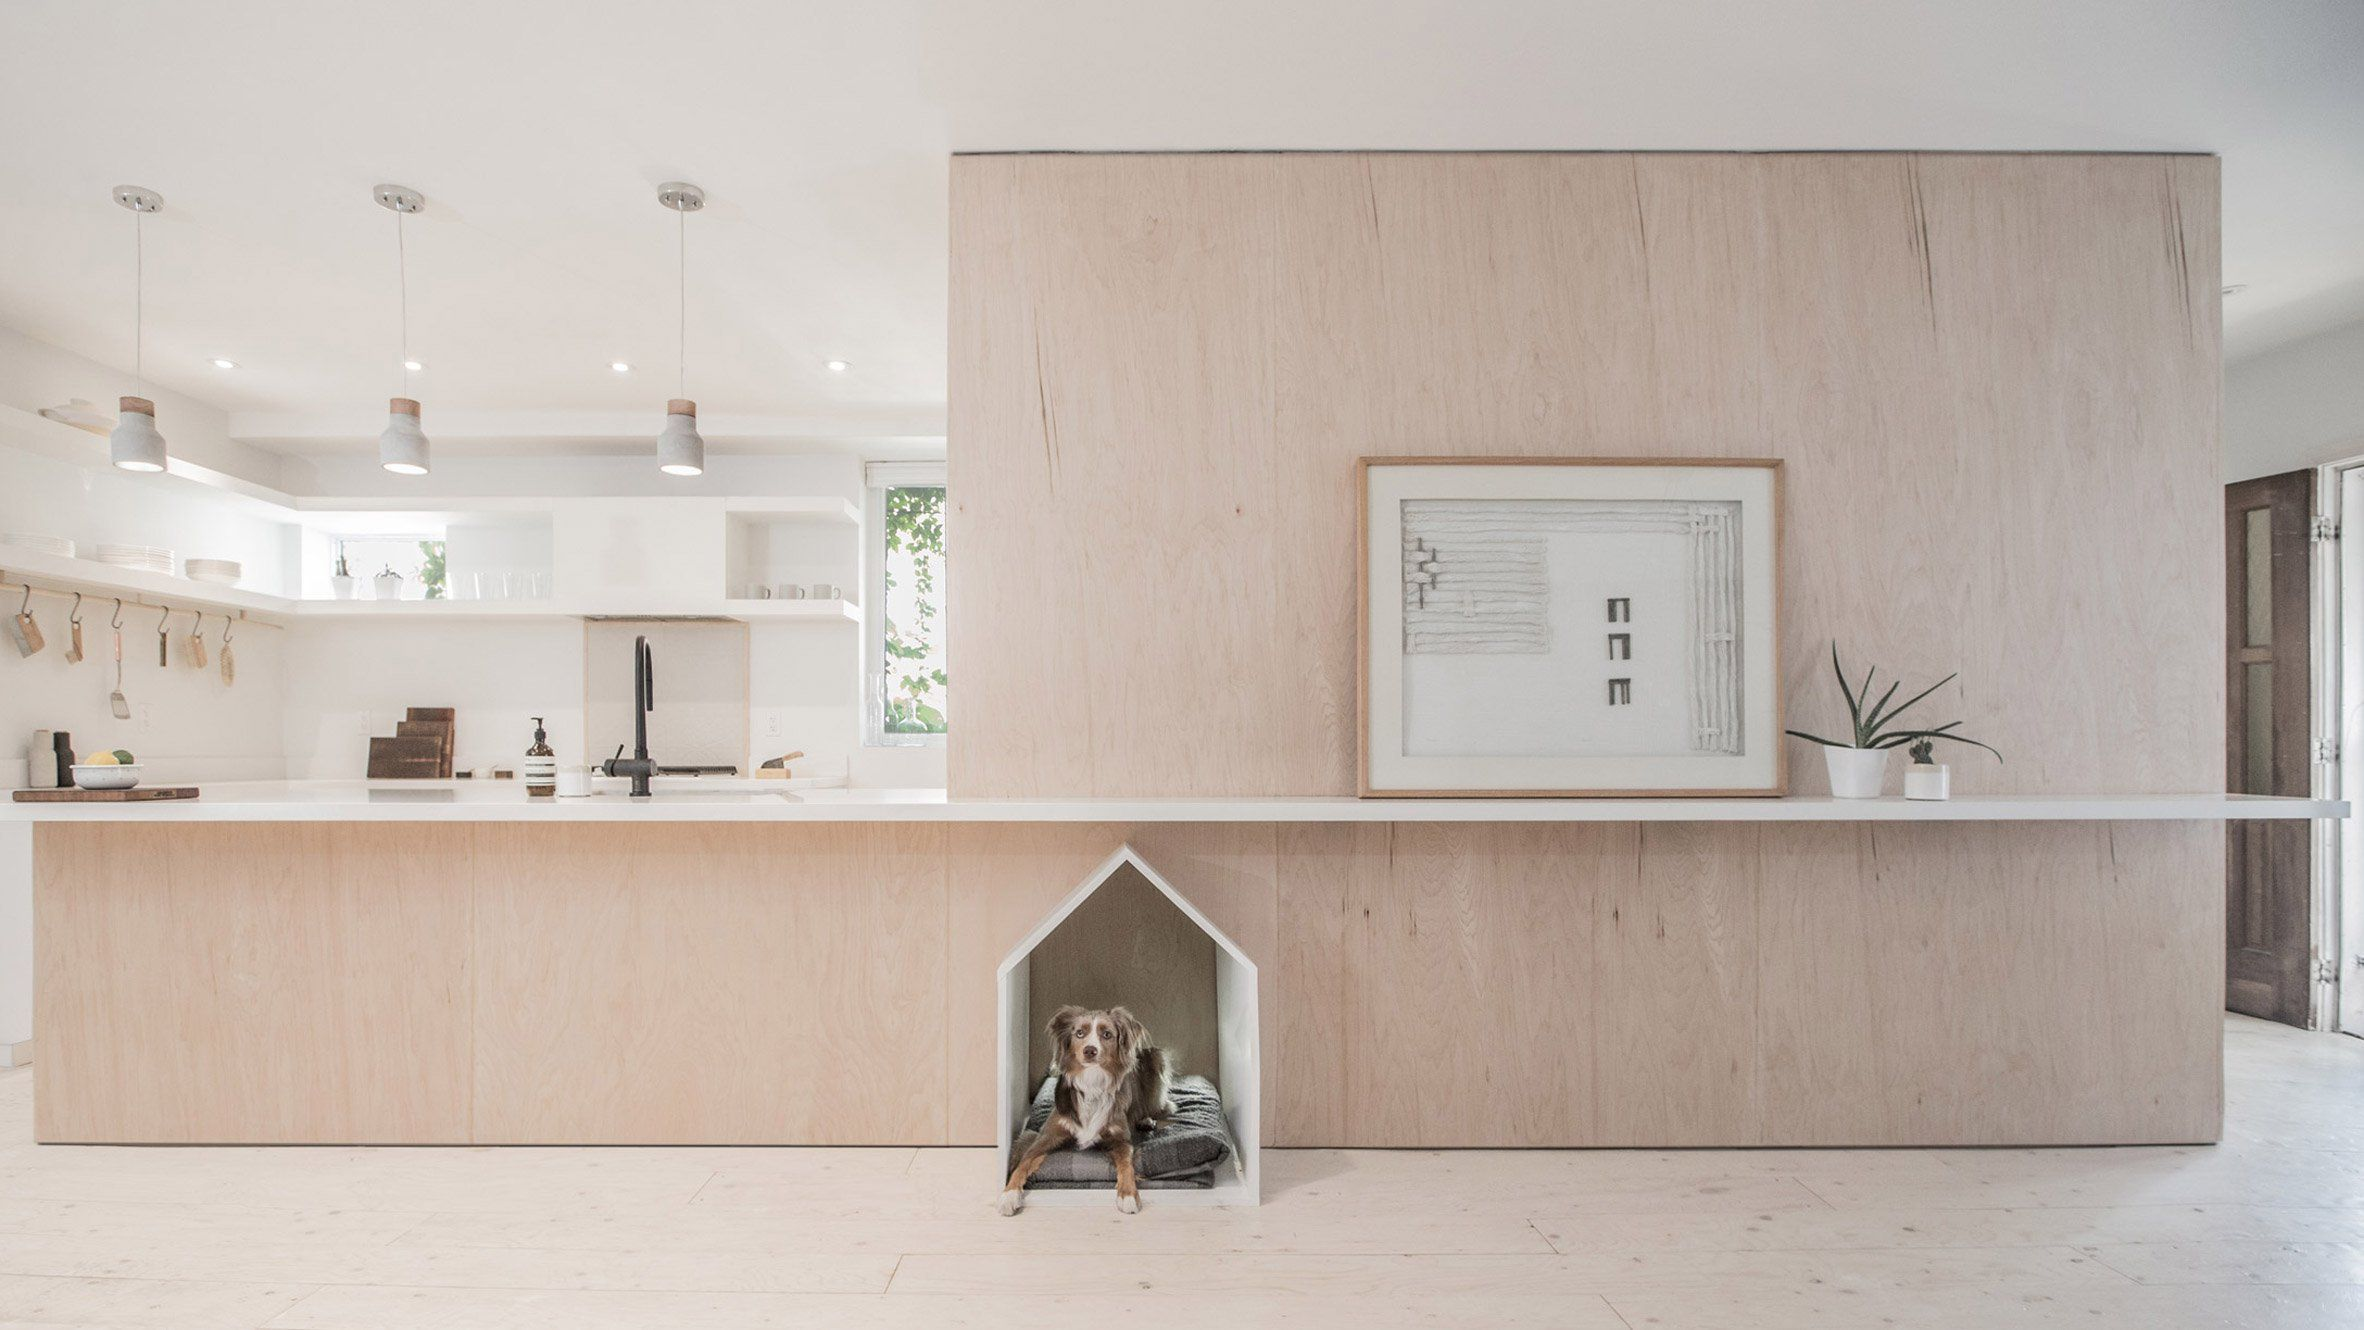 B und q küchendesign studioac inserts plywood unit complete with dog bed into toronto